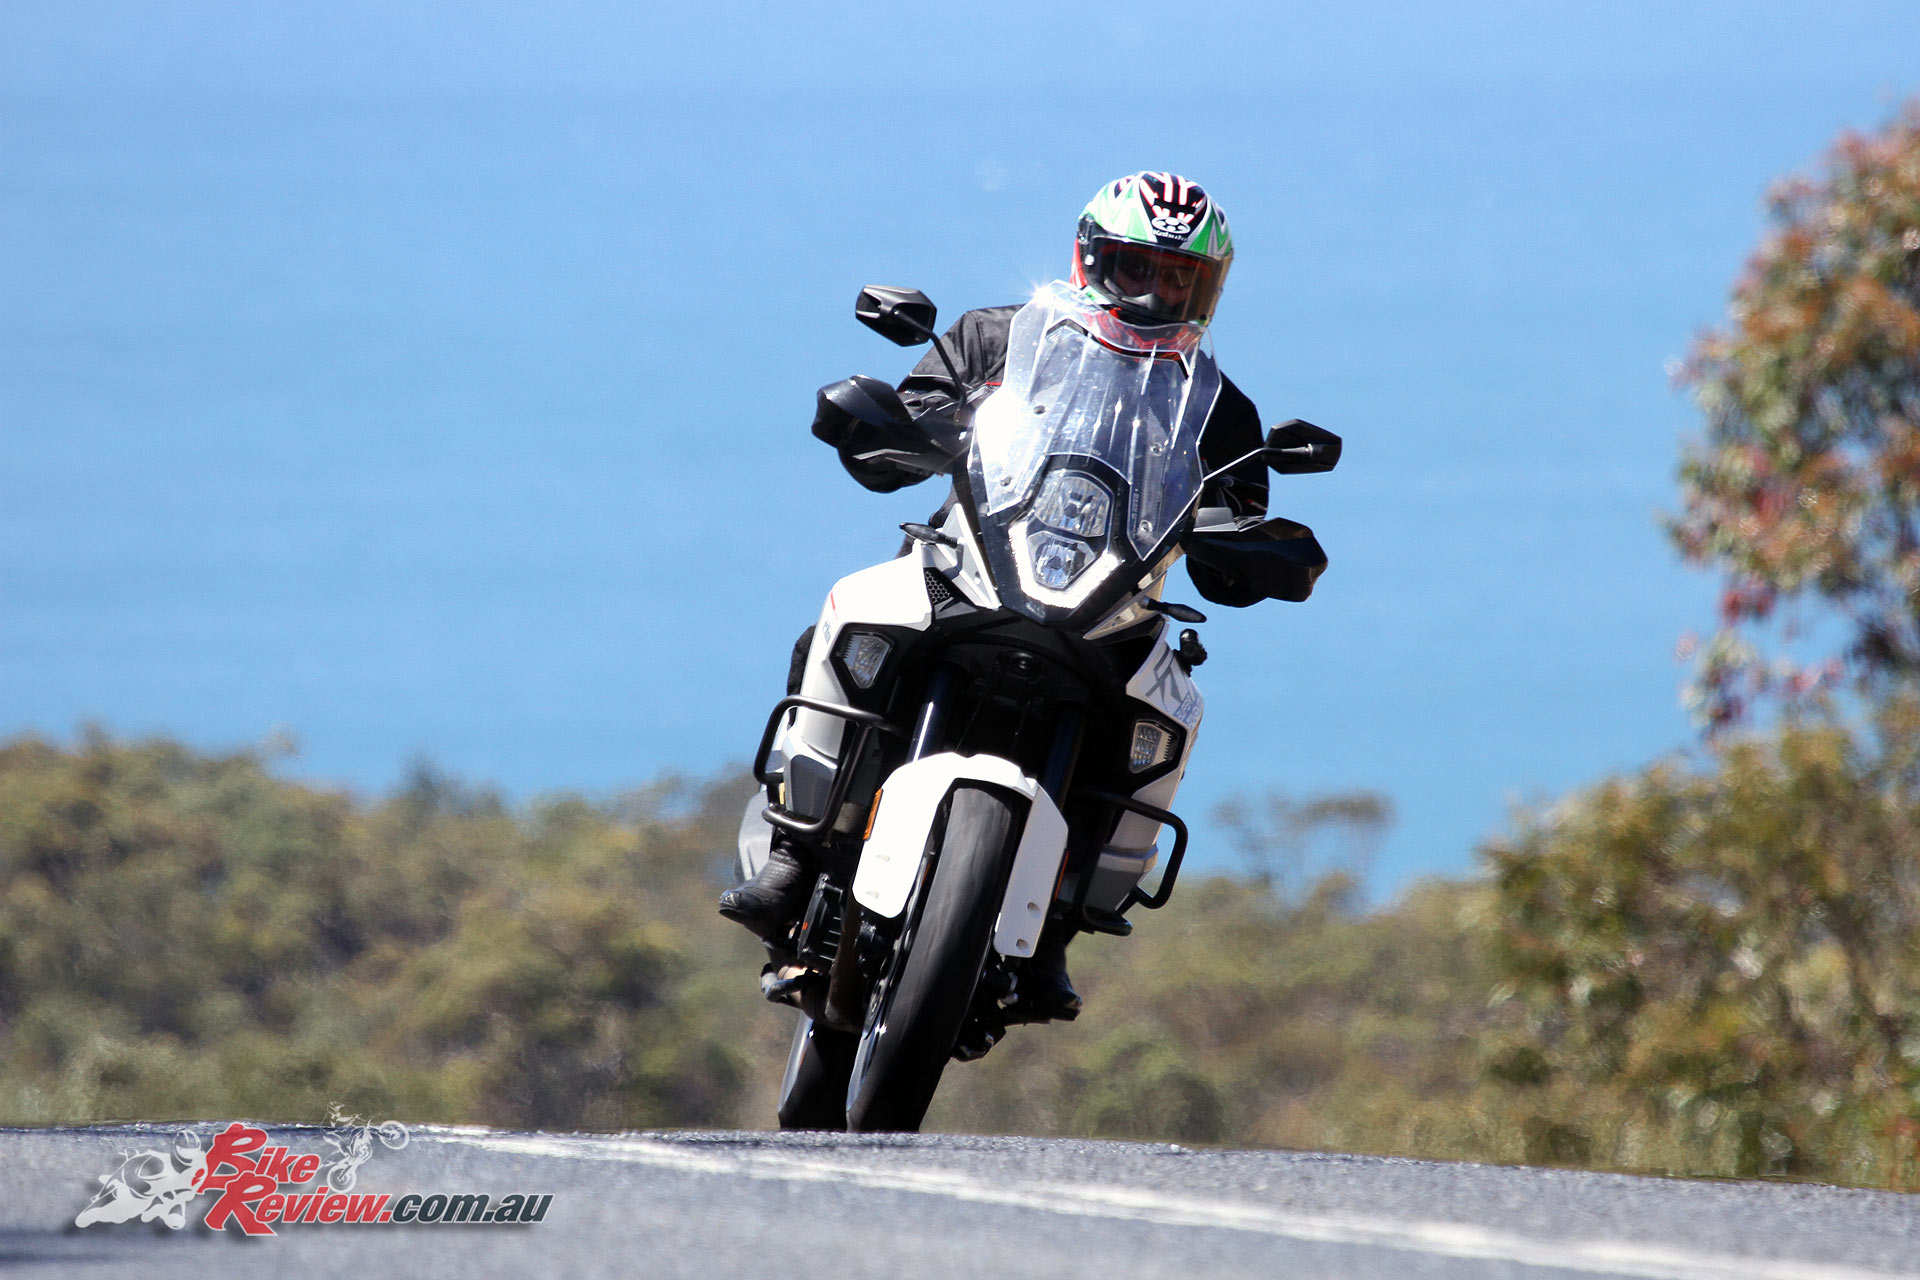 We had road tyres fitted for our test as Richard did 3500km on the tarmac riding from north of Sydney to Phillip Island and back. He had a blast in the twisties racing his sportsbike riding mates.